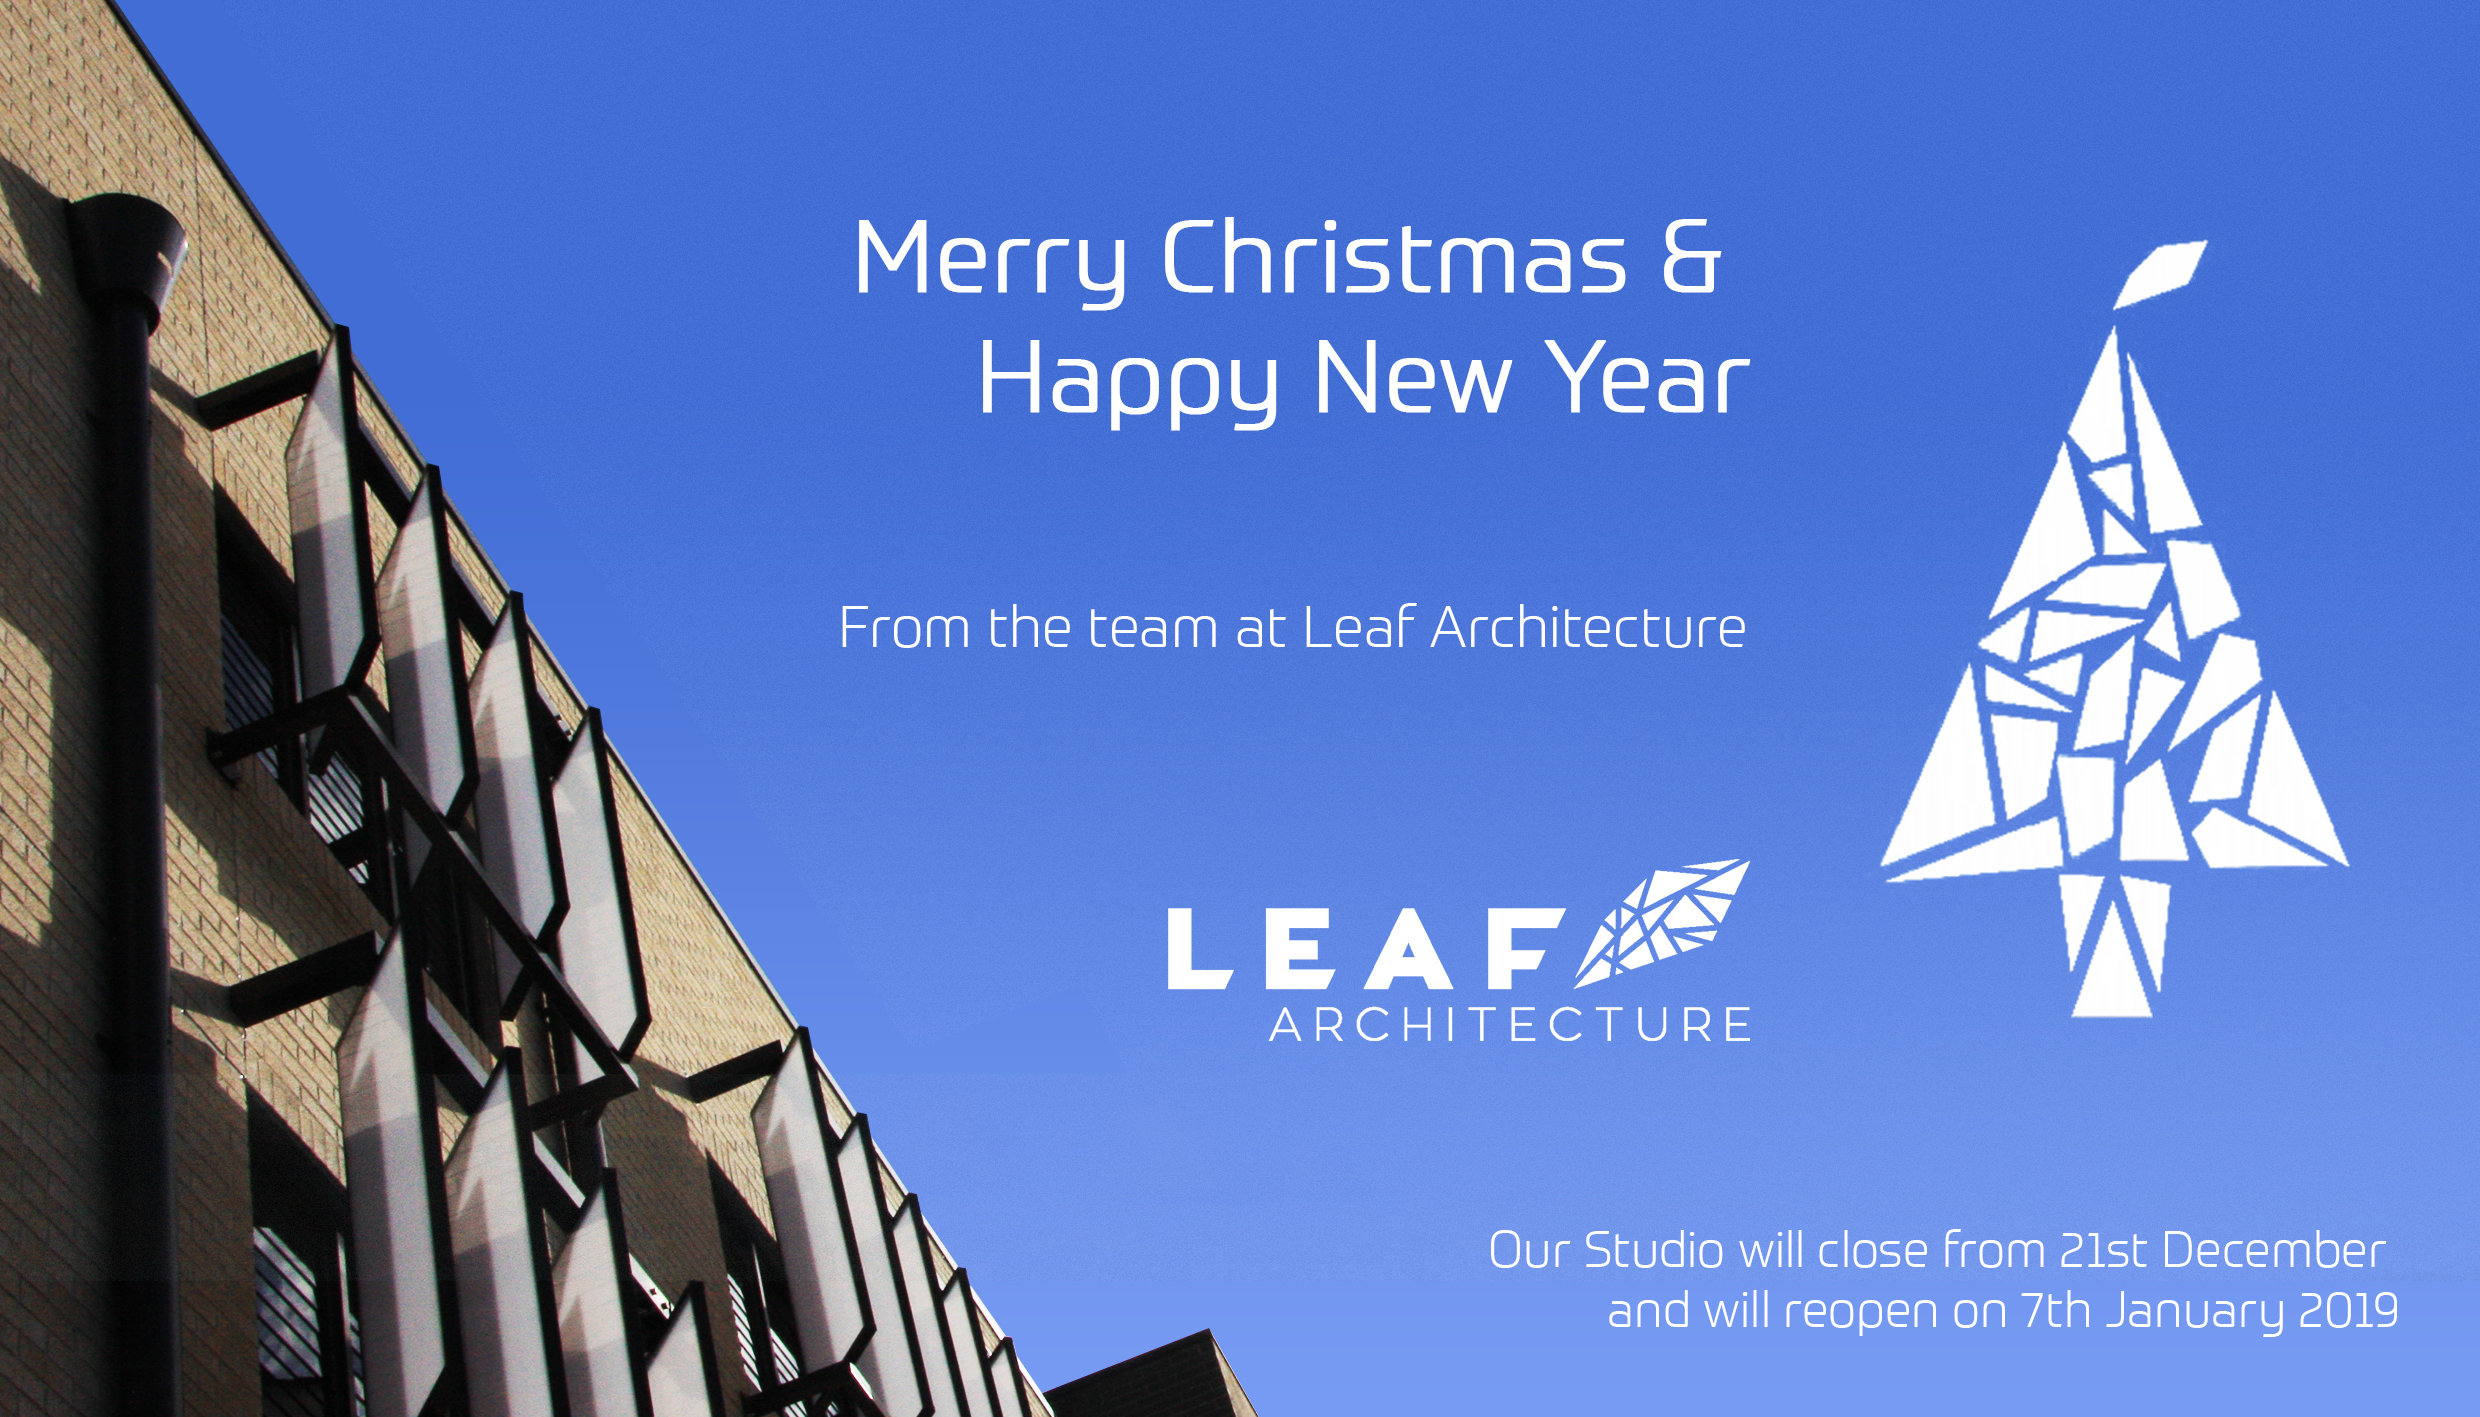 Leaf Architecture wishes you a Merry Christmas